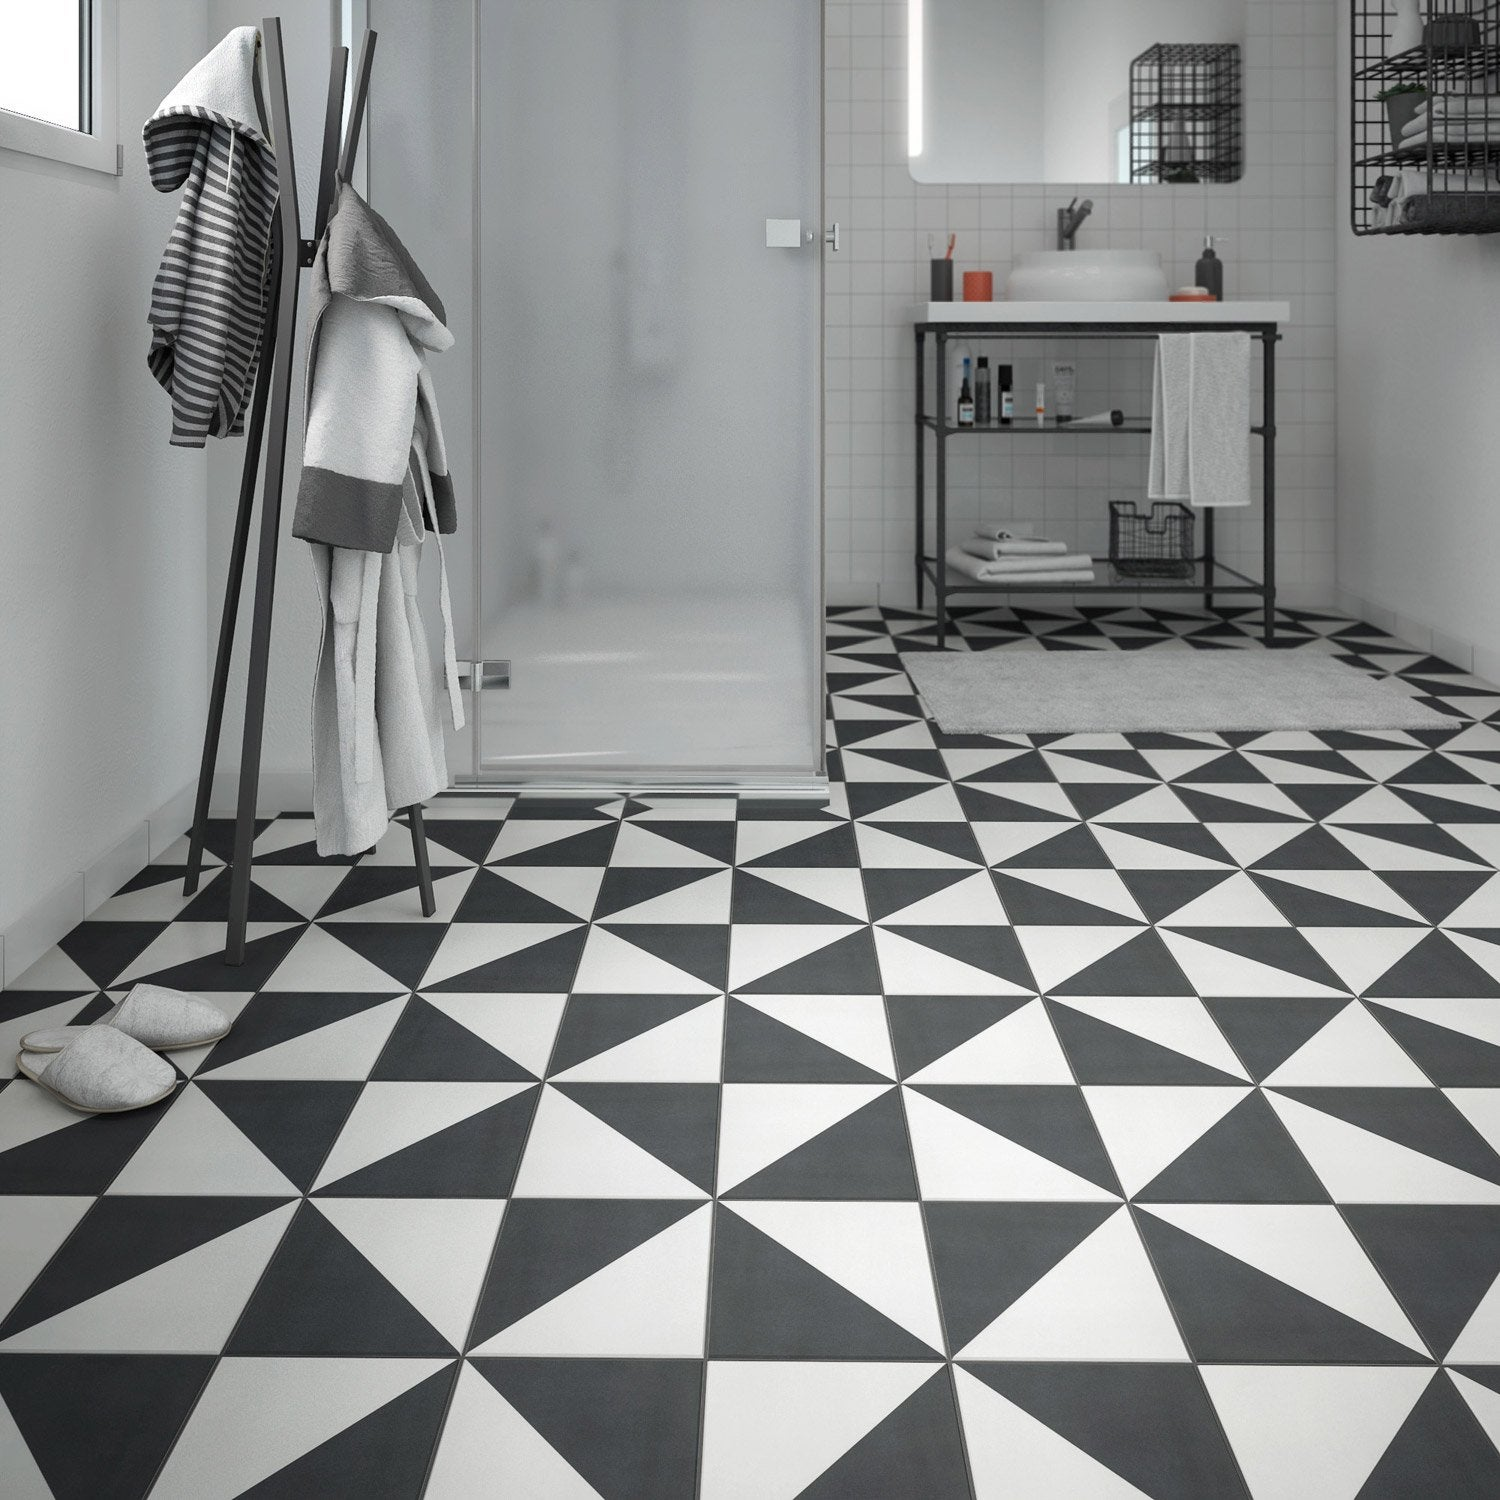 Carrelage Ciment Of Carreaux Ciment Noir Et Blanc Carrelage Ciment Baroque